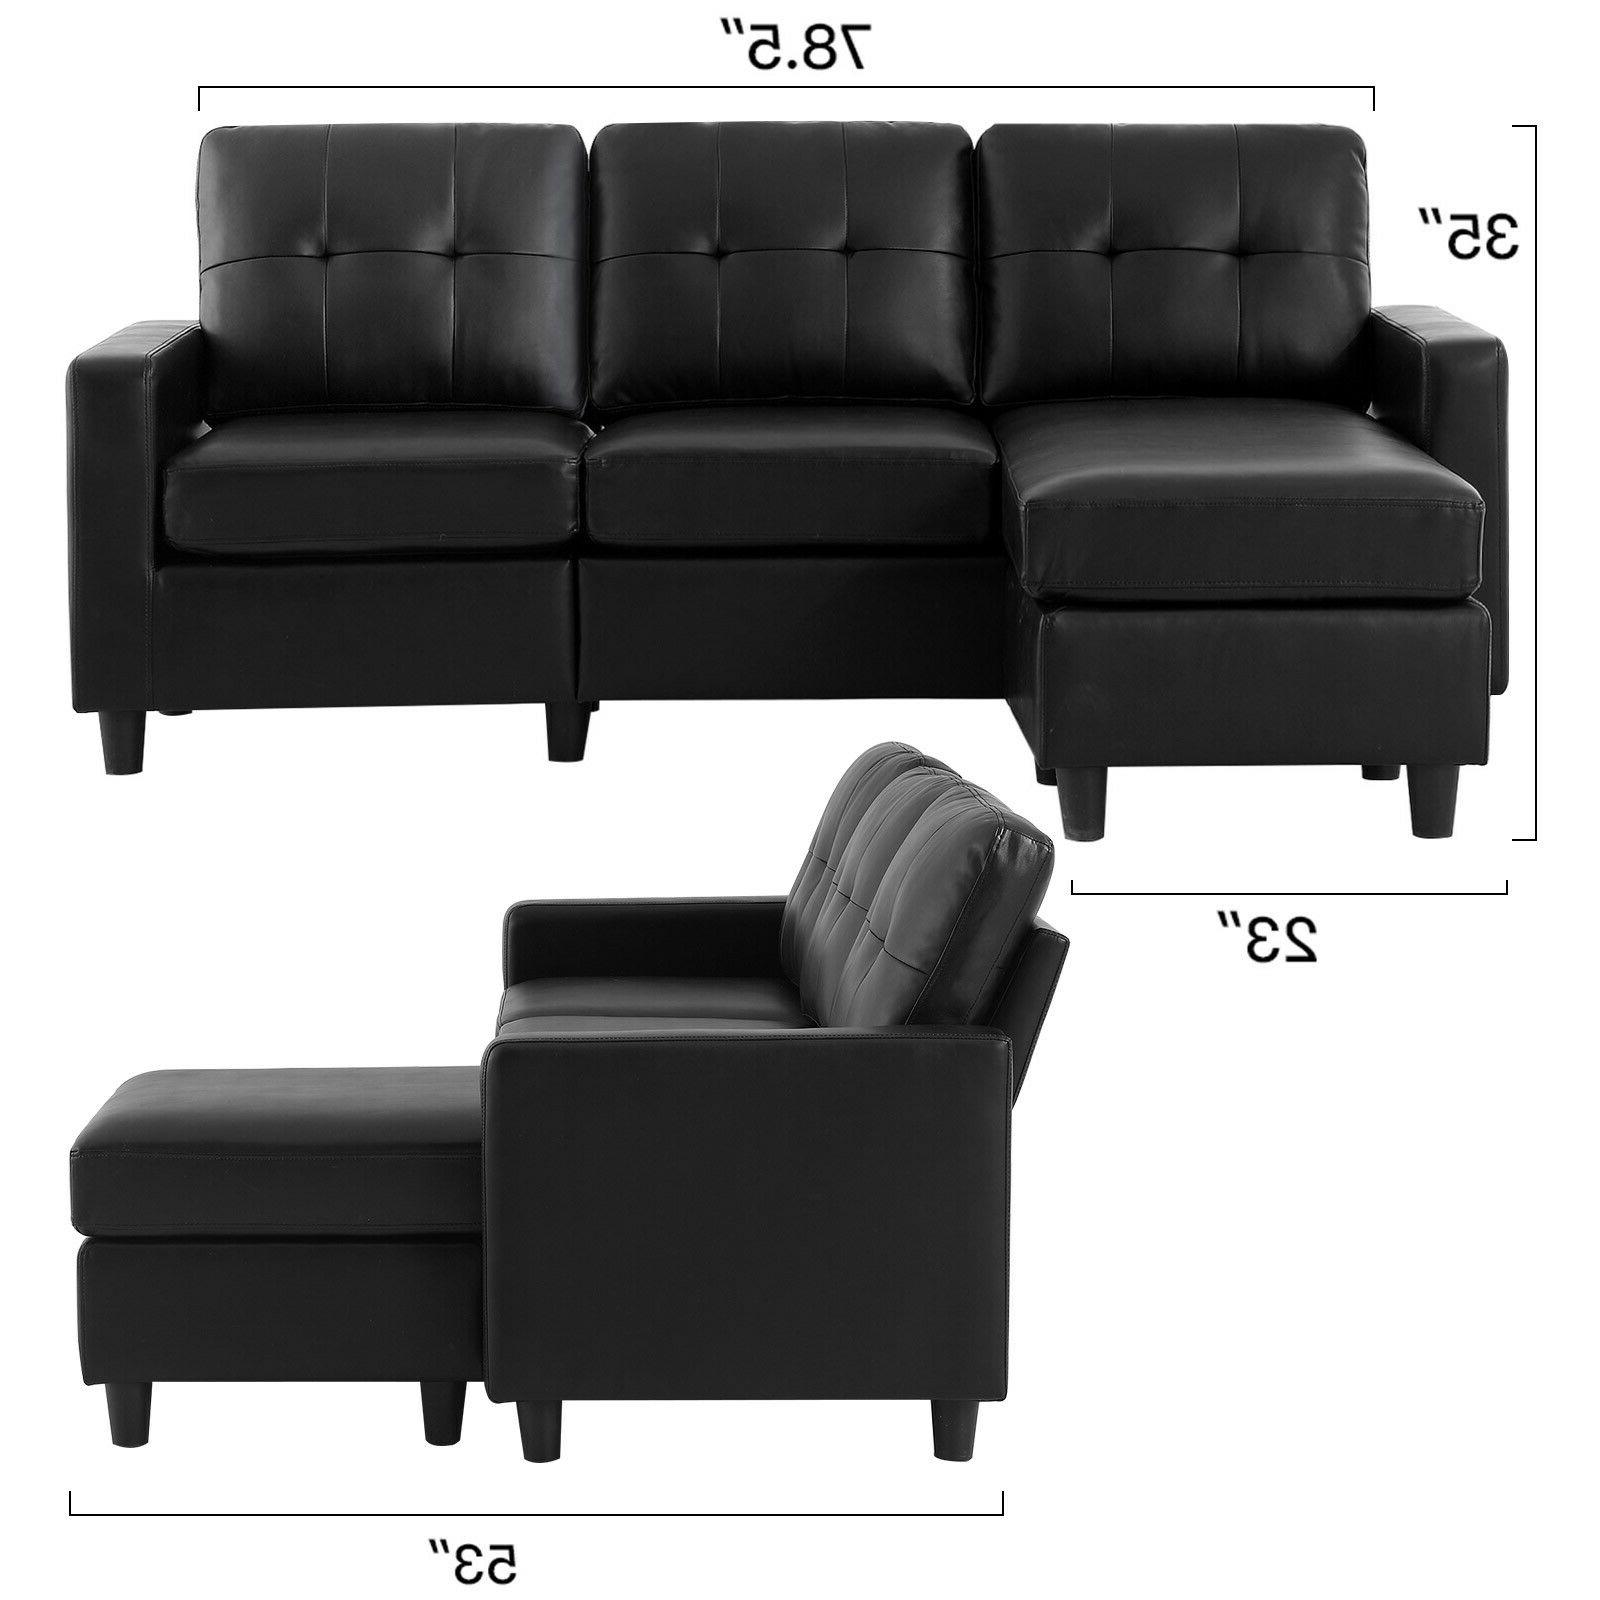 Black Leather Sectional Sofa L-Shaped Couch Chaise Space